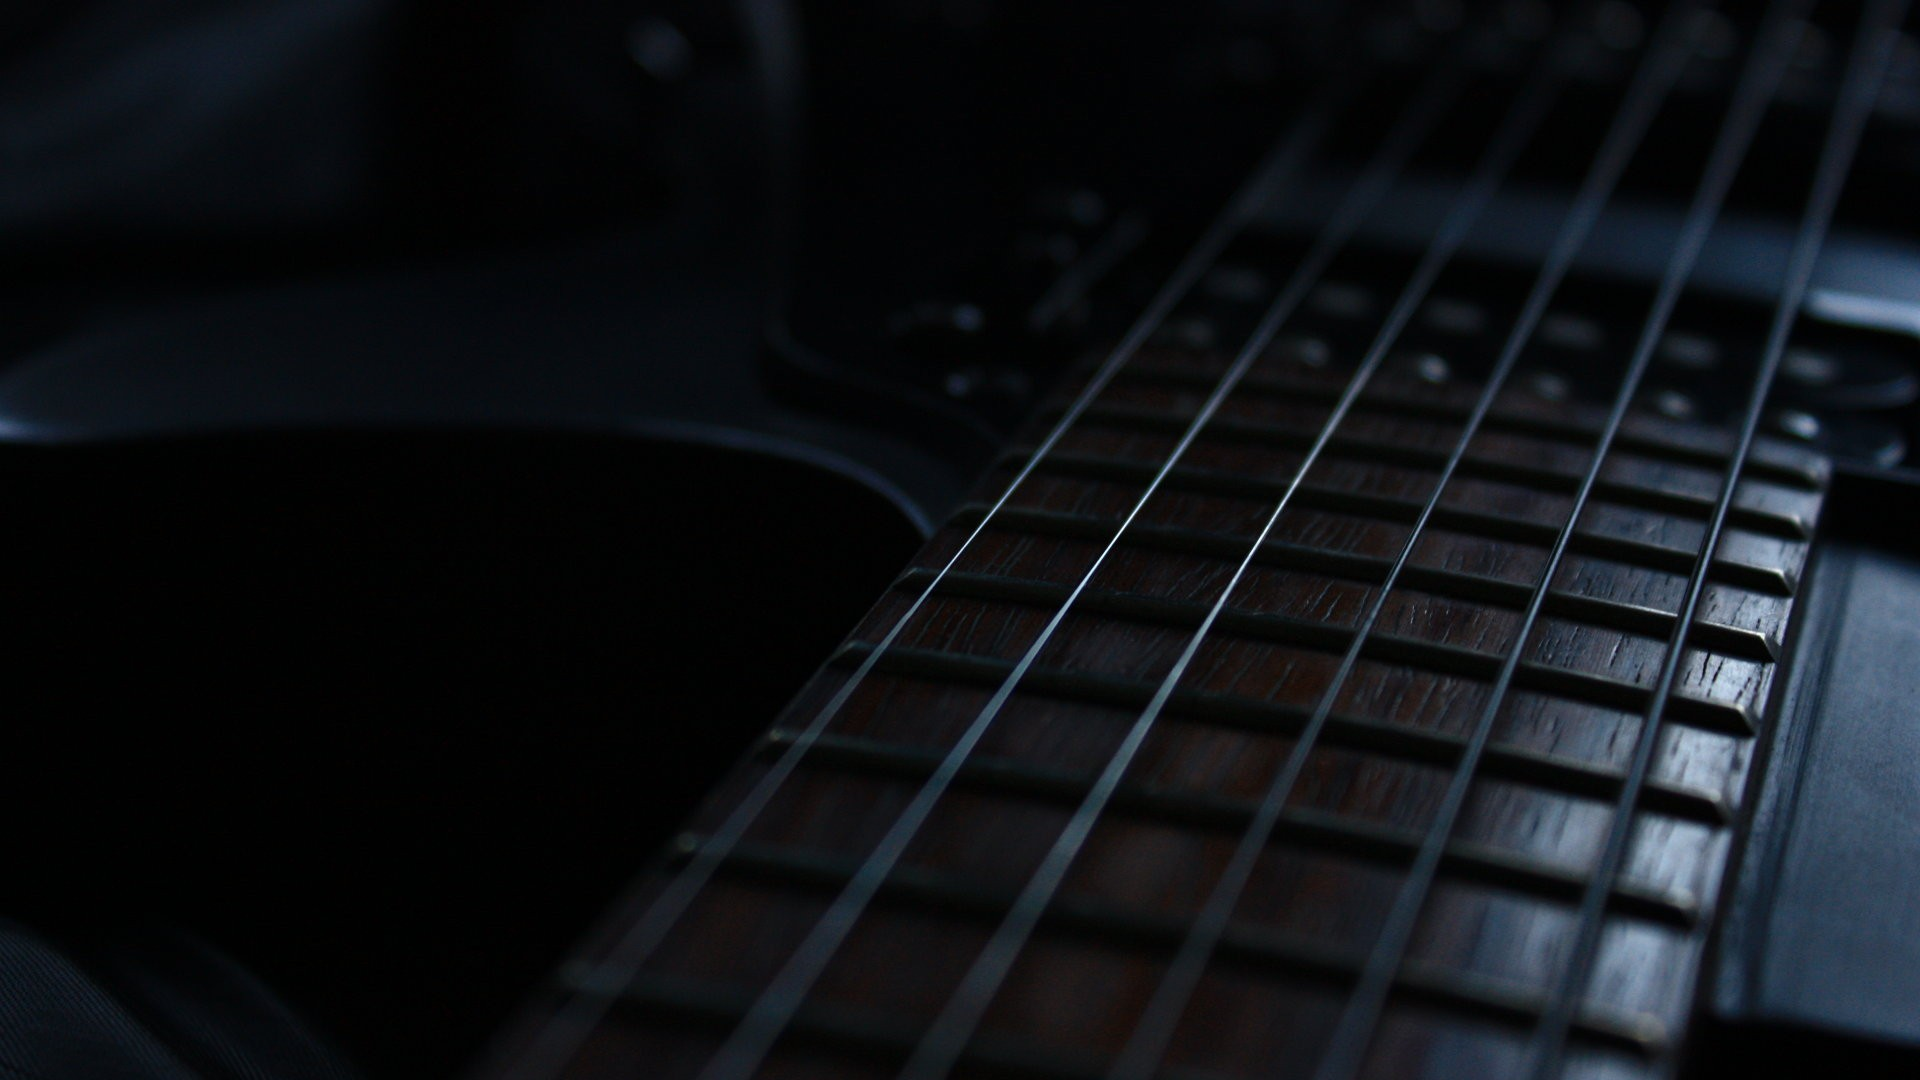 guitar wallpaper for laptop wallpapersafari